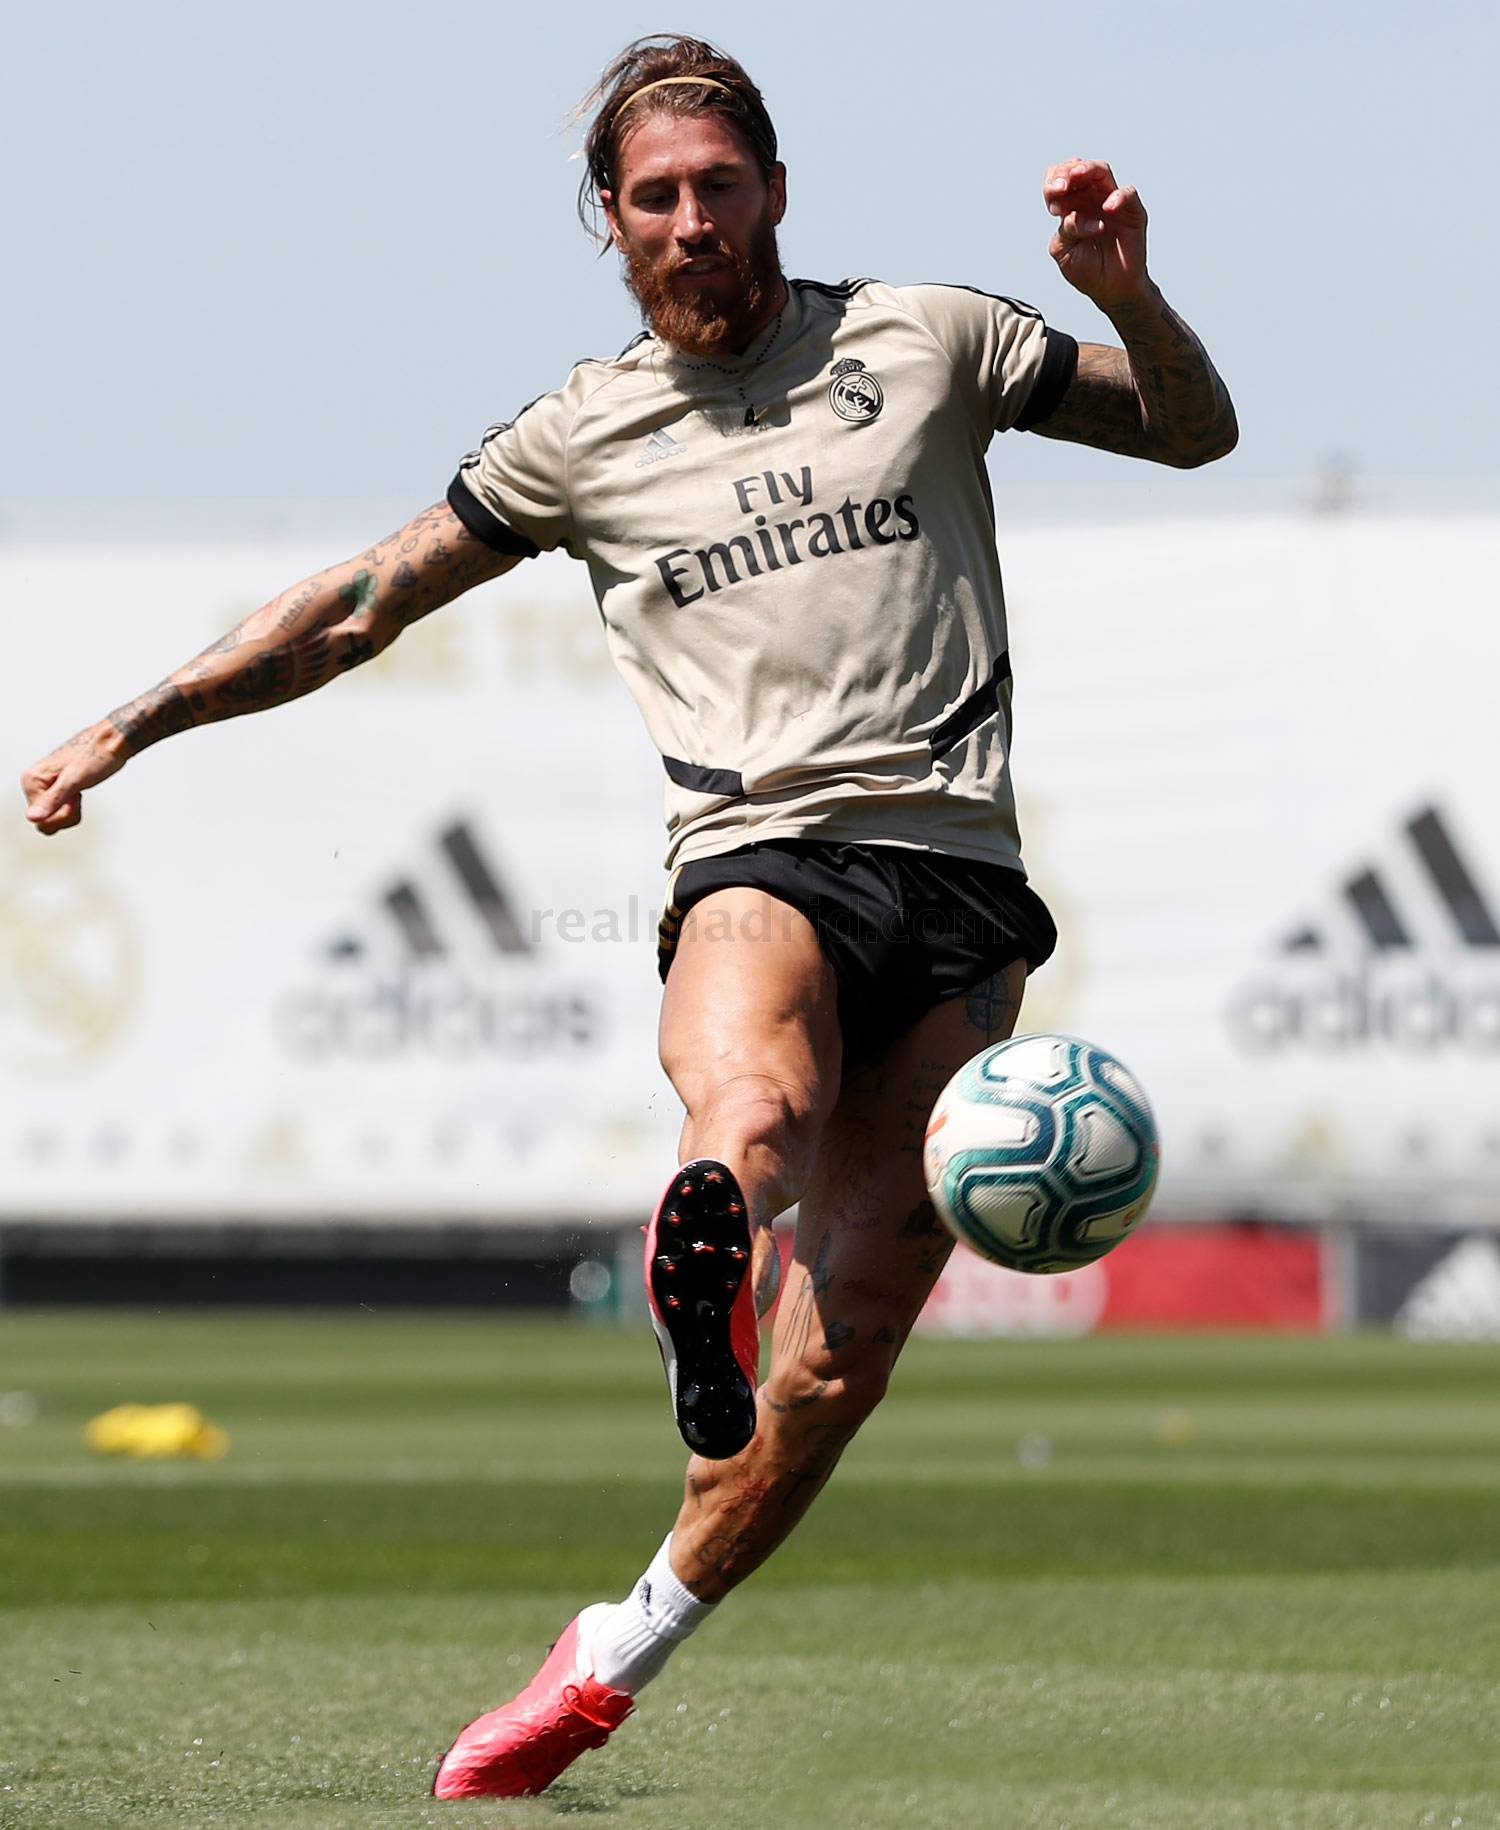 Real Madrid - Entrenamiento del Real Madrid  - 10-06-2020